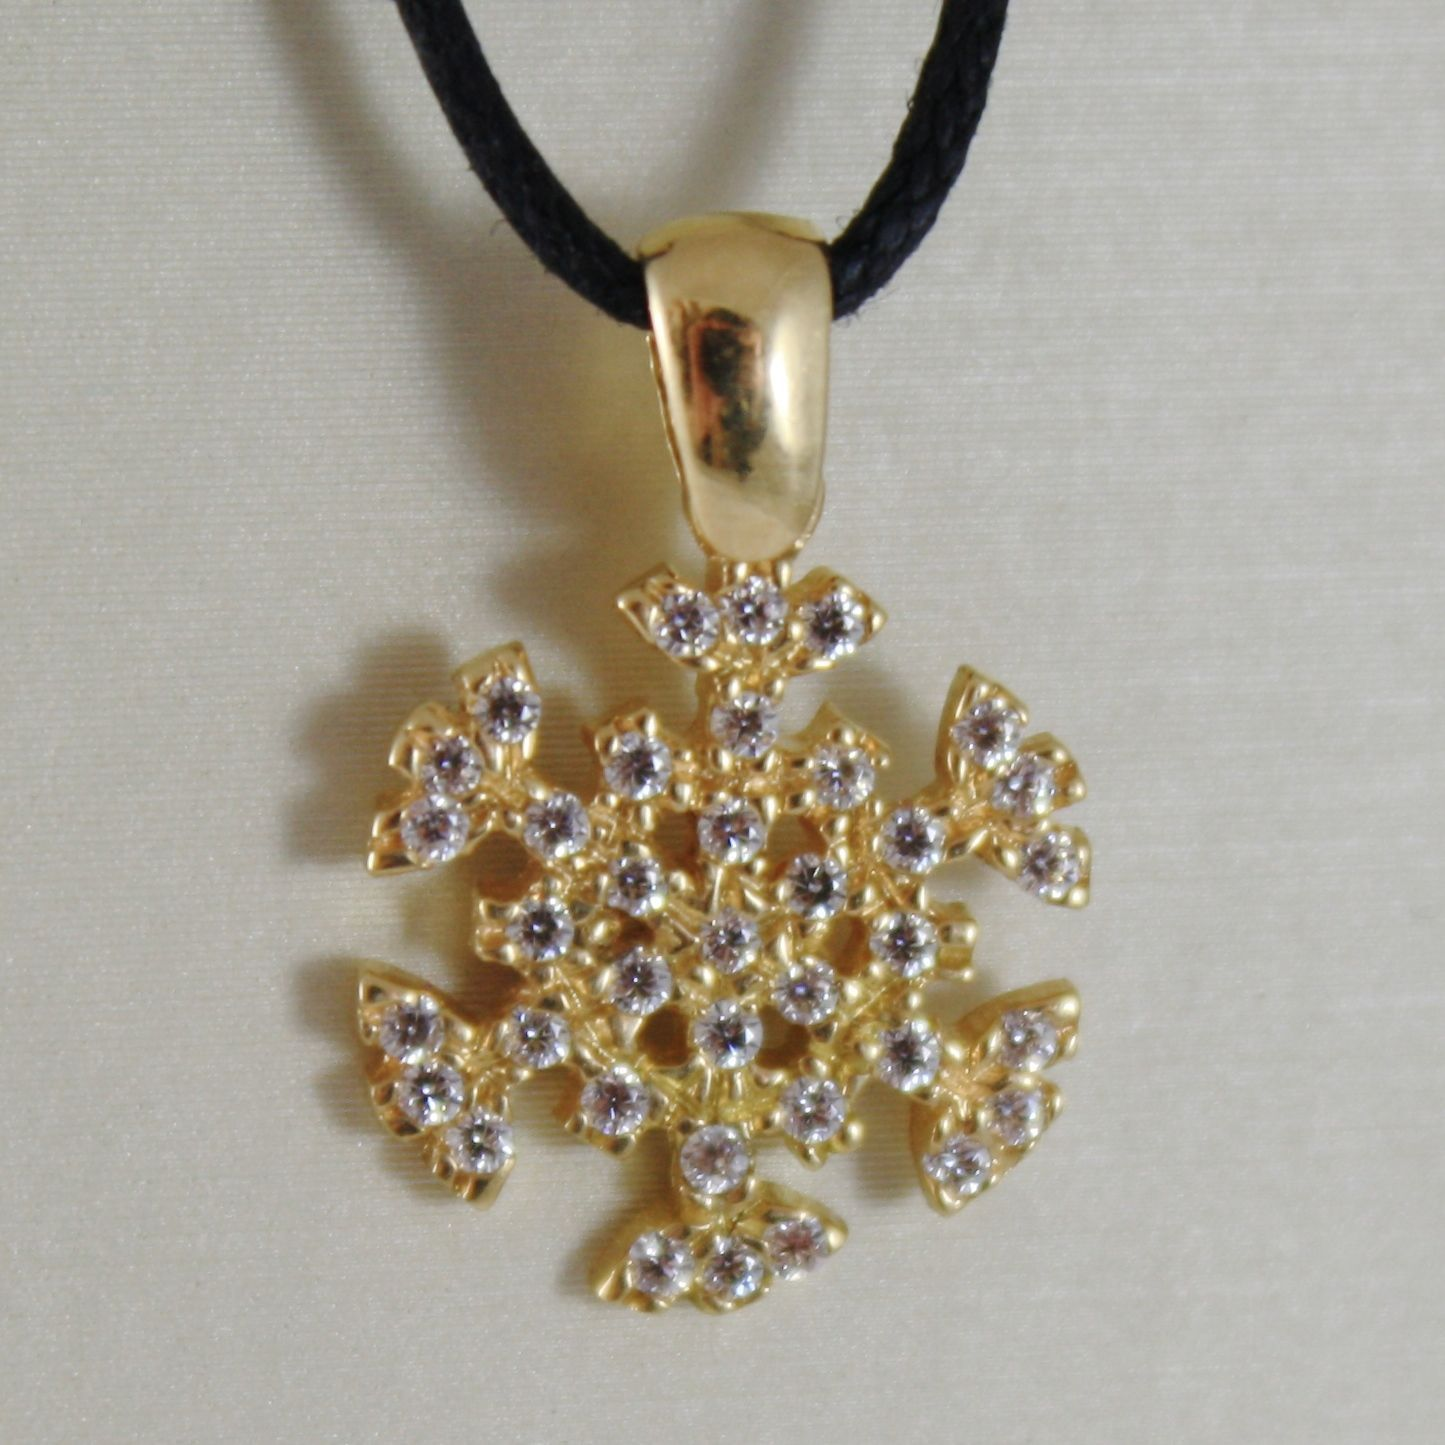 18K YELLOW GOLD SNOWFLAKE PENDANT 19 MM, 0.75 INCHES, ZIRCONIA, MADE IN ITALY